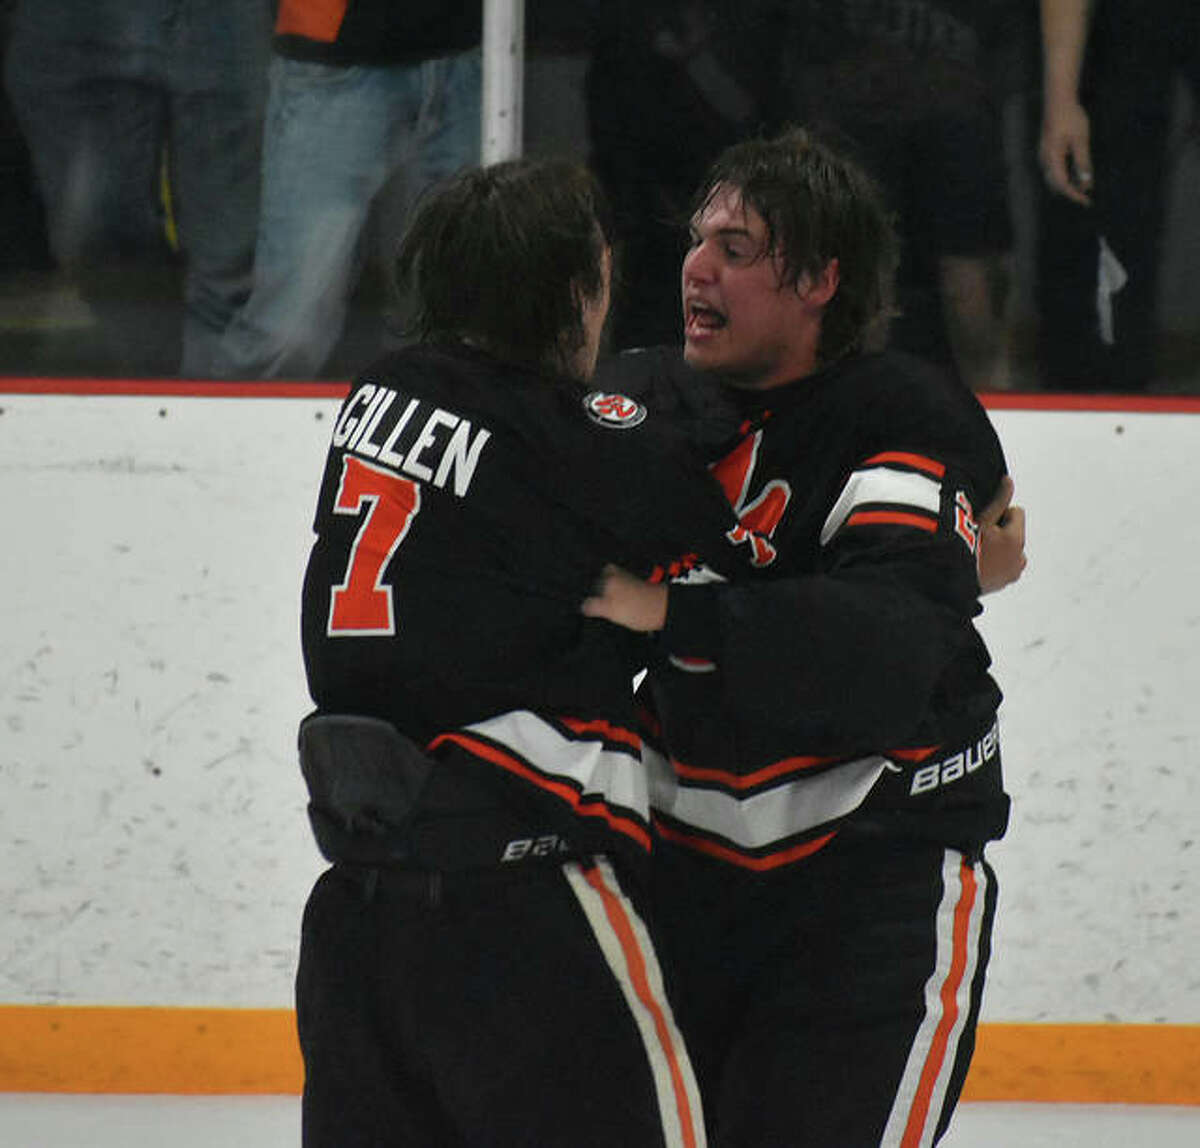 The Edwardsville Tigers celebrate capturing the MVCHA championship for the 12th time in program history.